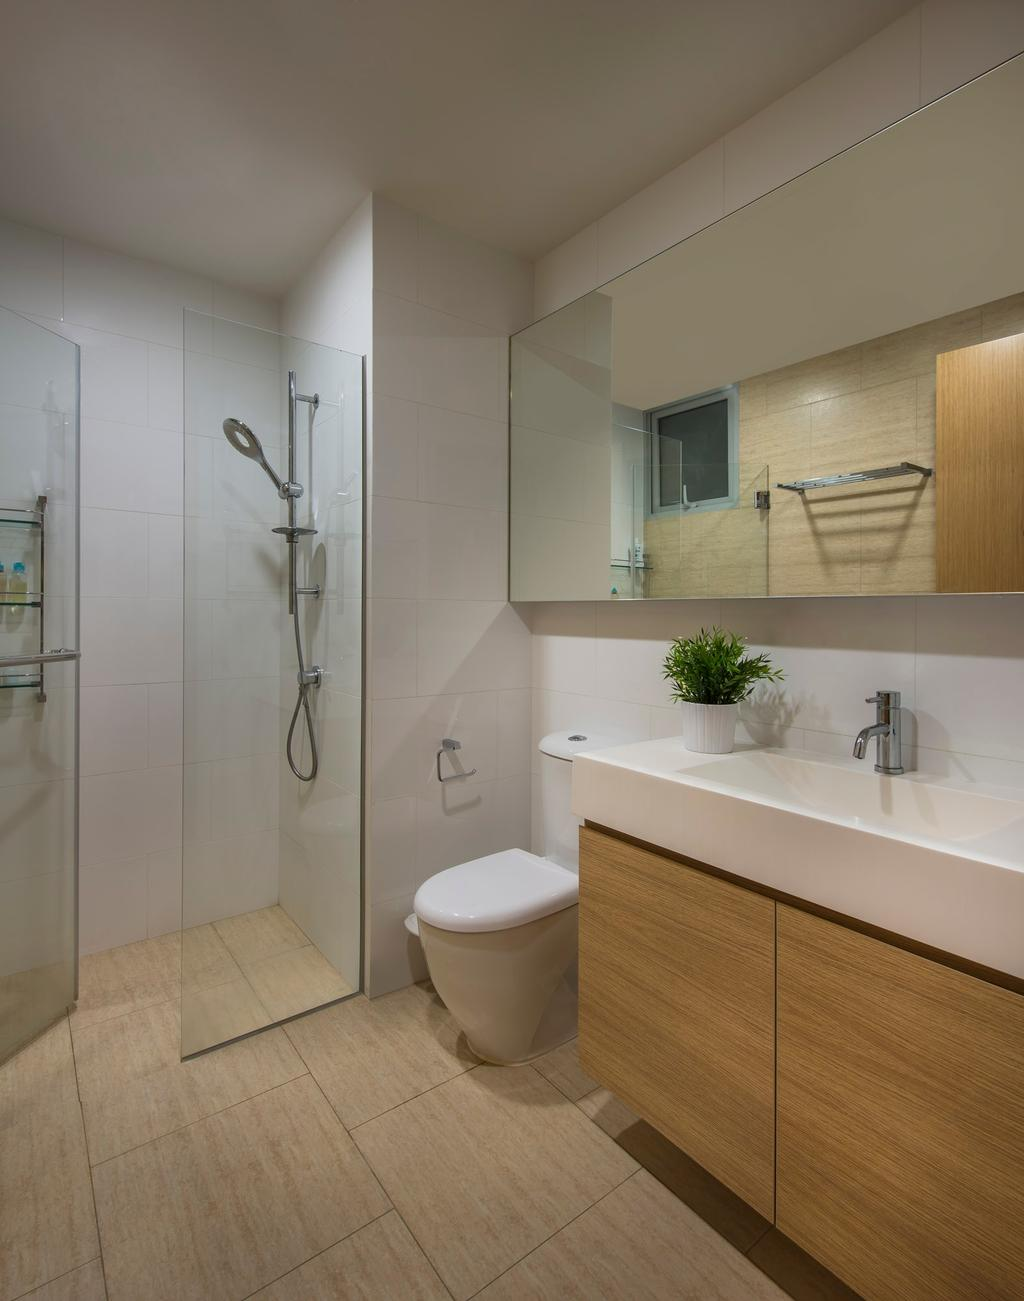 Transitional, Condo, Bathroom, Clover by the Park, Interior Designer, M3 Studio, Neutral Tones, Wood Laminate, Wood, Laminate, Mirror, Vessel Sink, Bathroom Counter, Tile, Tiles, Glass Wall, Glass Doors, Glass Cubicle, White, Toilet, Shower, Indoors, Interior Design, Room